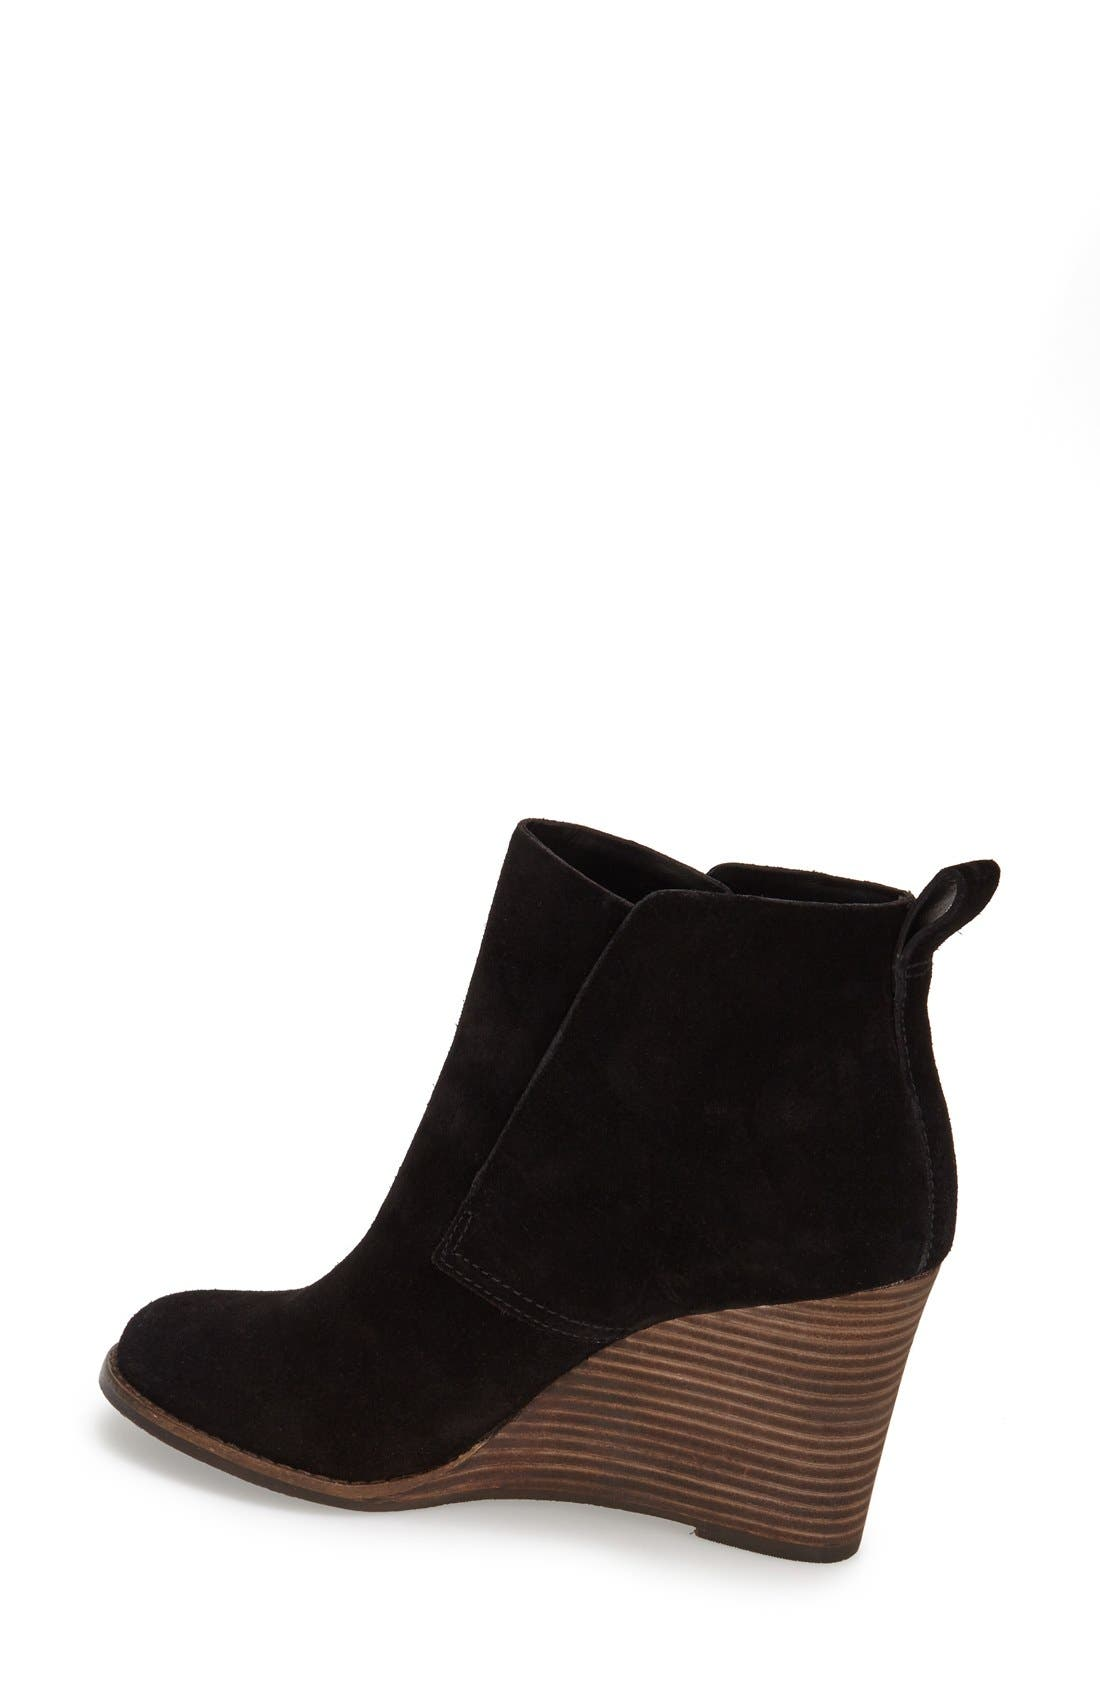 Alternate Image 2  - Lucky Brand 'Yoniana' Wedge Bootie (Women)